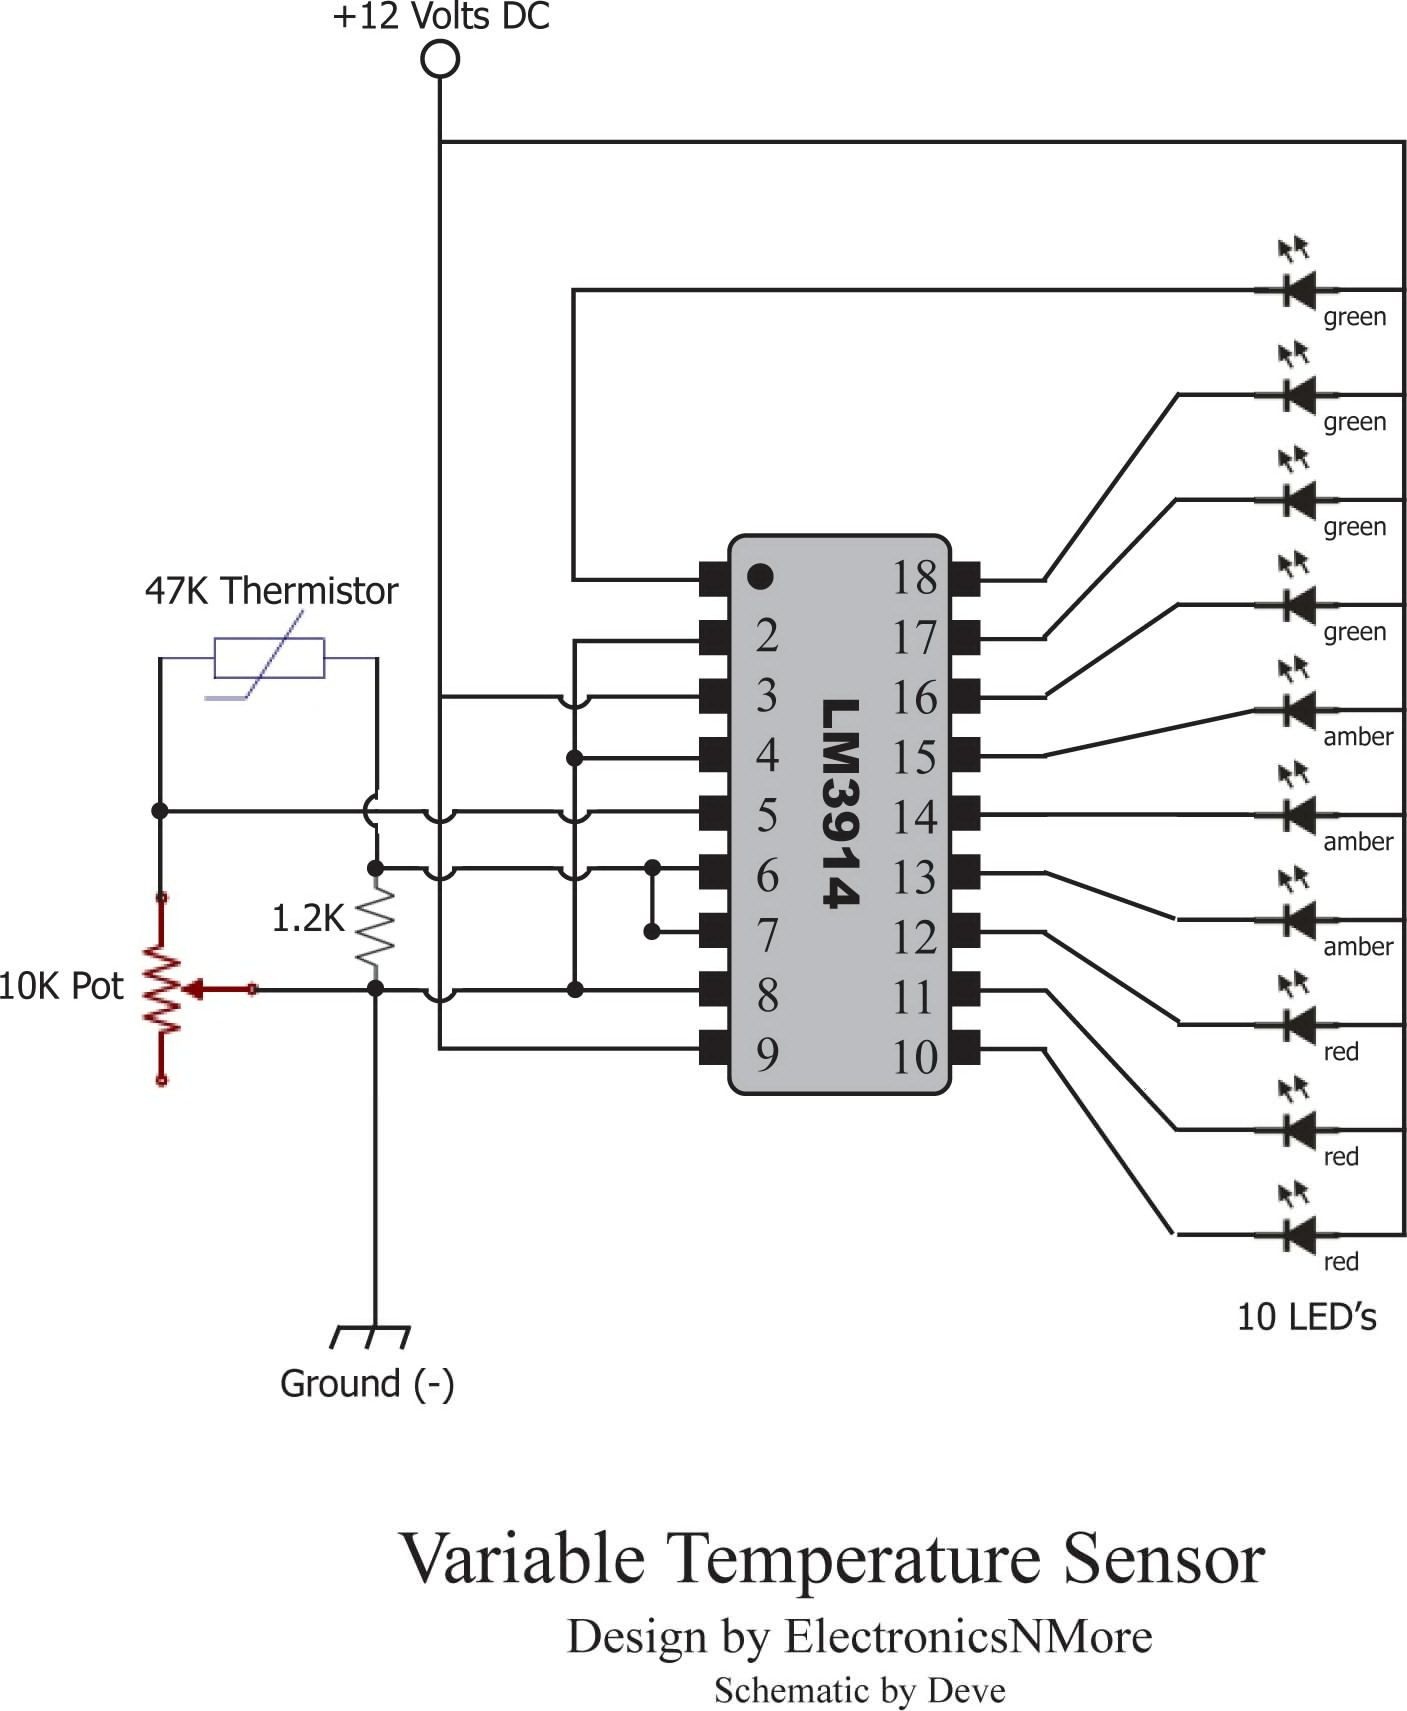 tyco 5 blade relay wiring diagram wiring diagram [ 1407 x 1711 Pixel ]